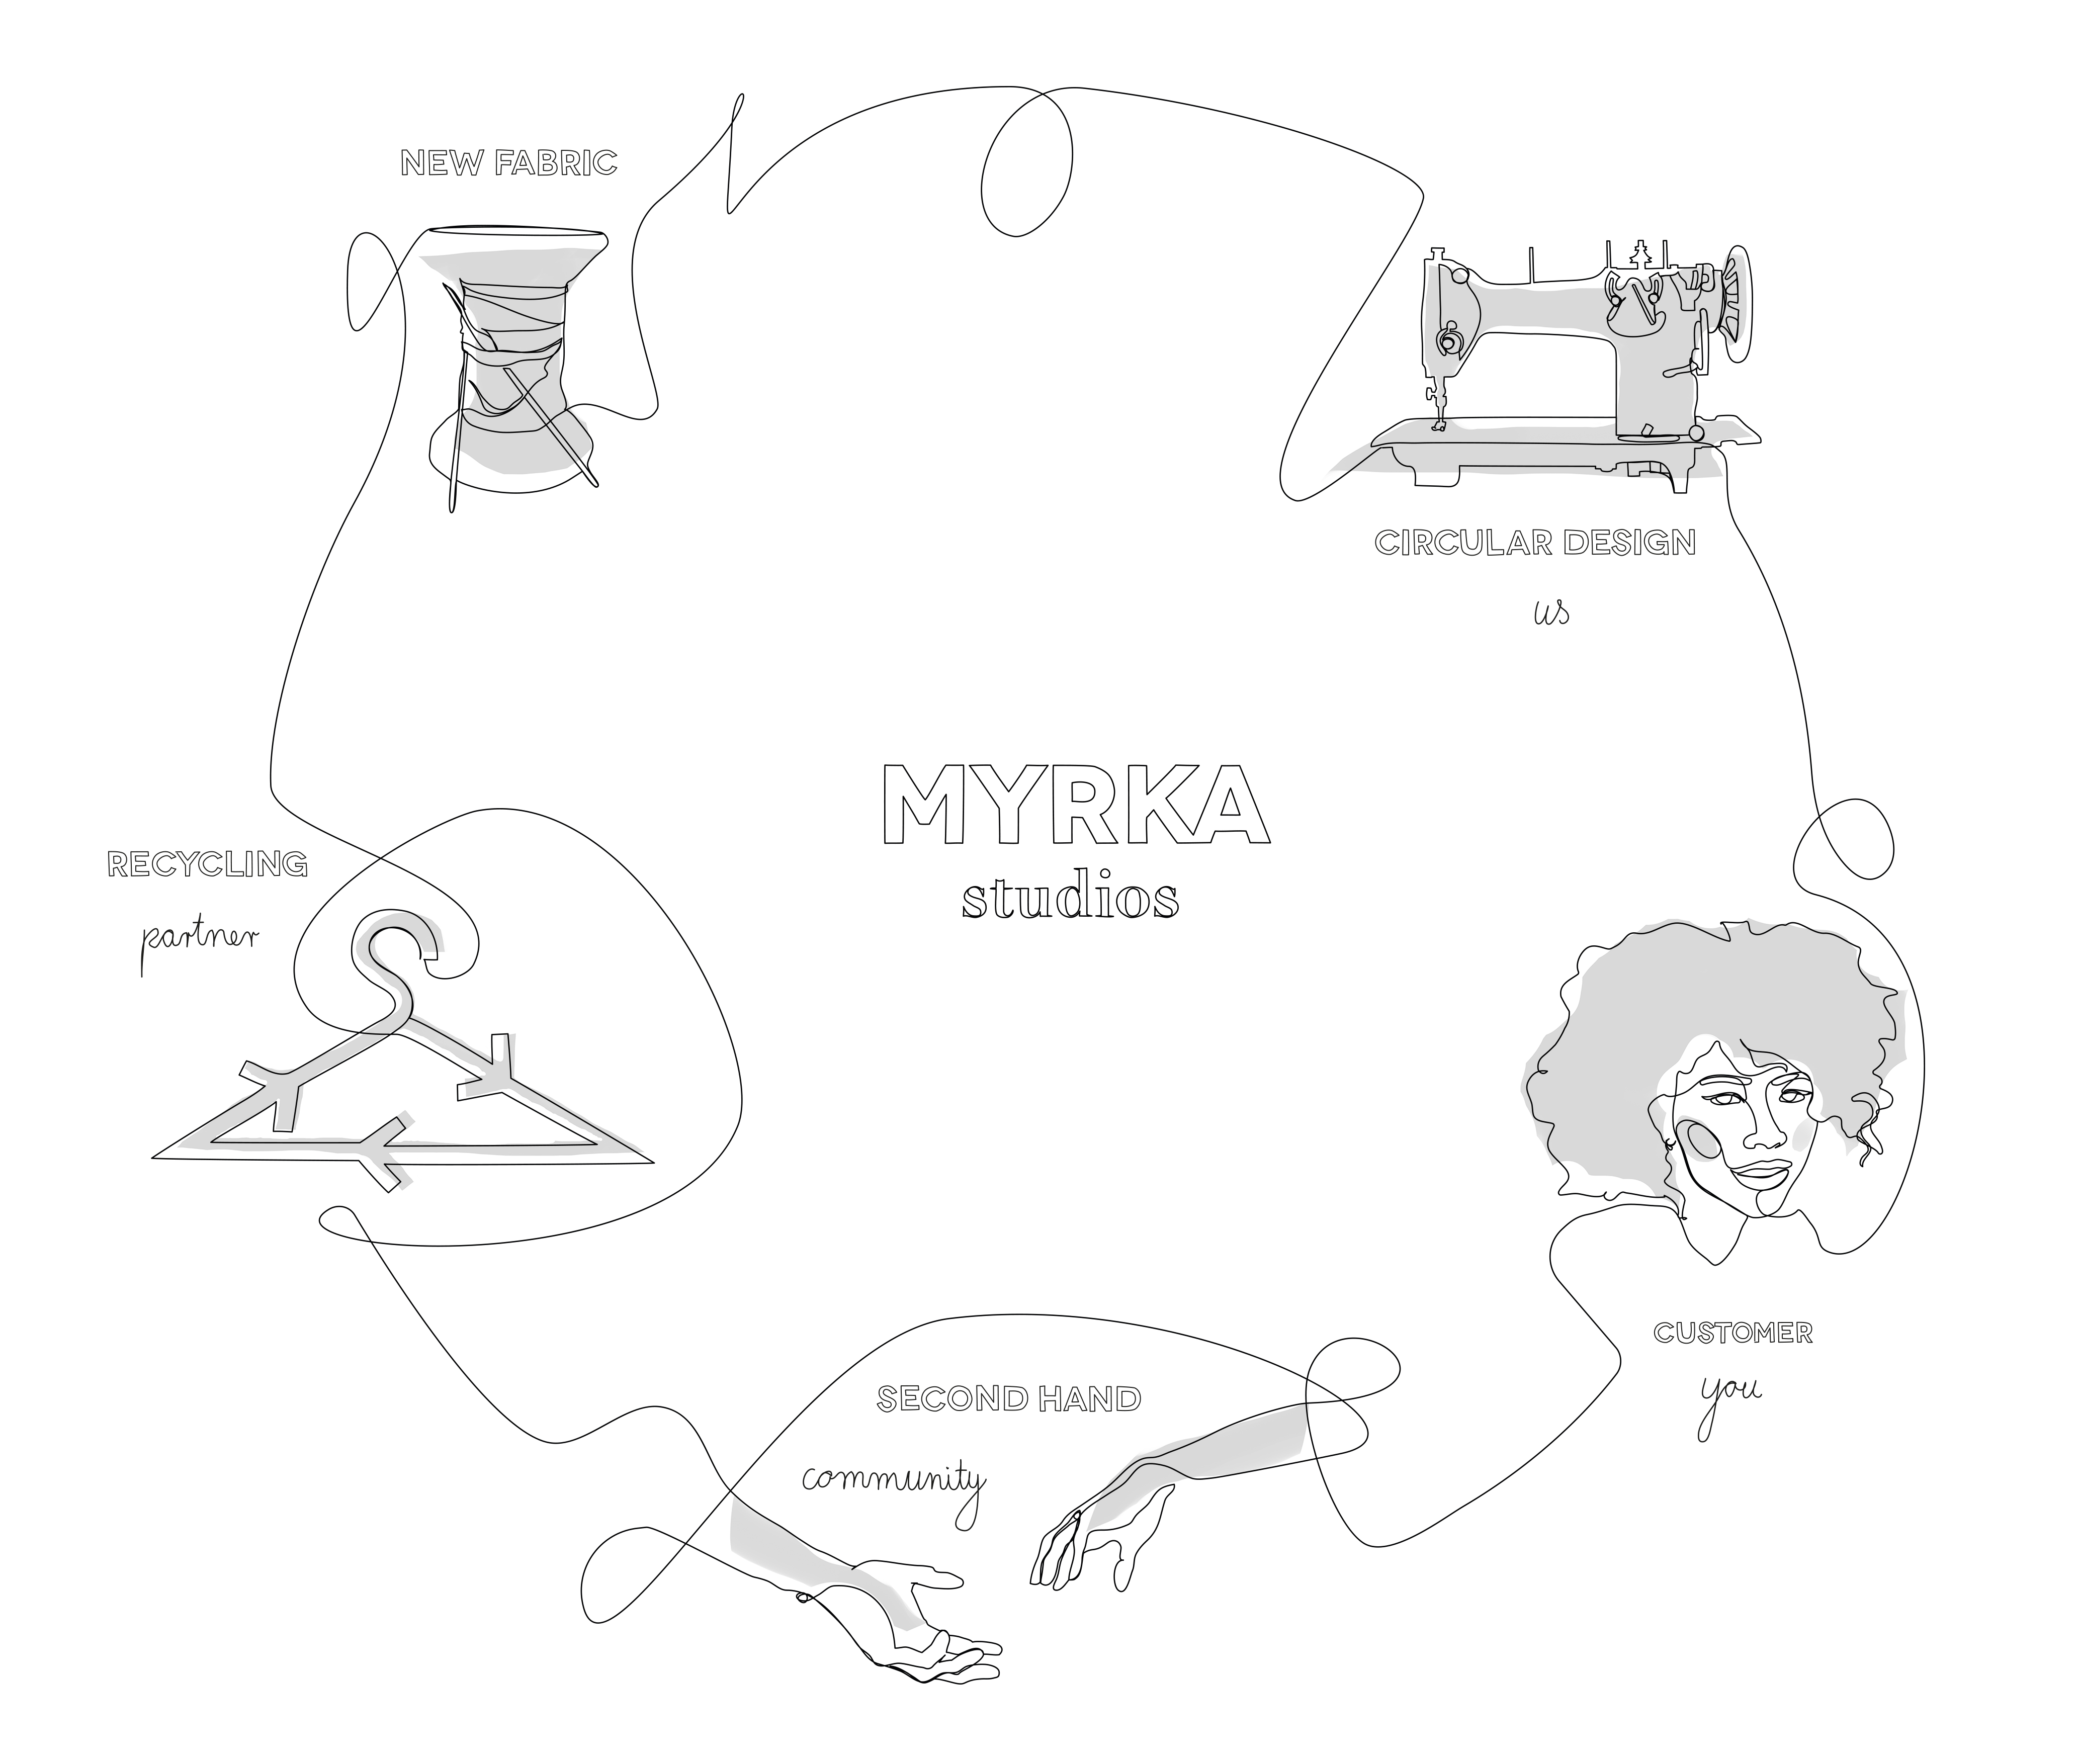 closed-loop-cycle-myrka-studios